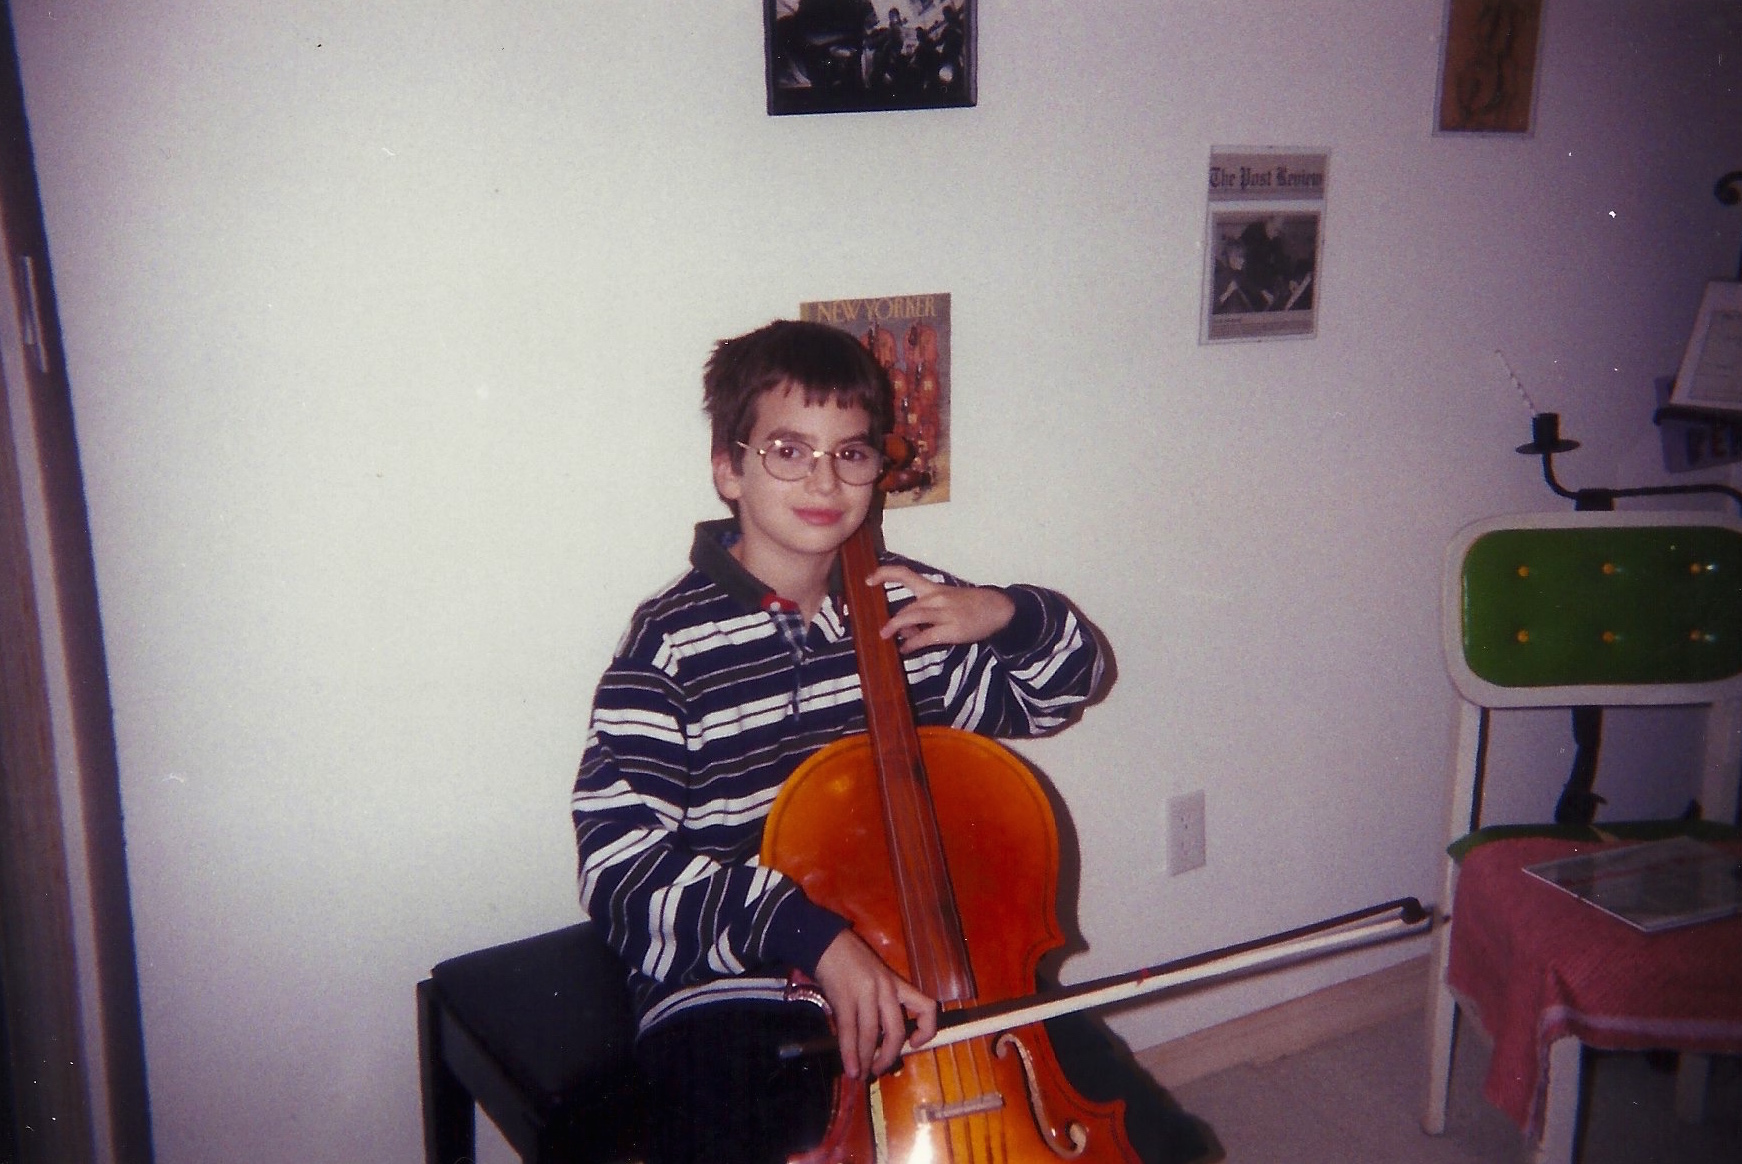 Young Bryan Charles Wilson taking cello lessons and learning about life.